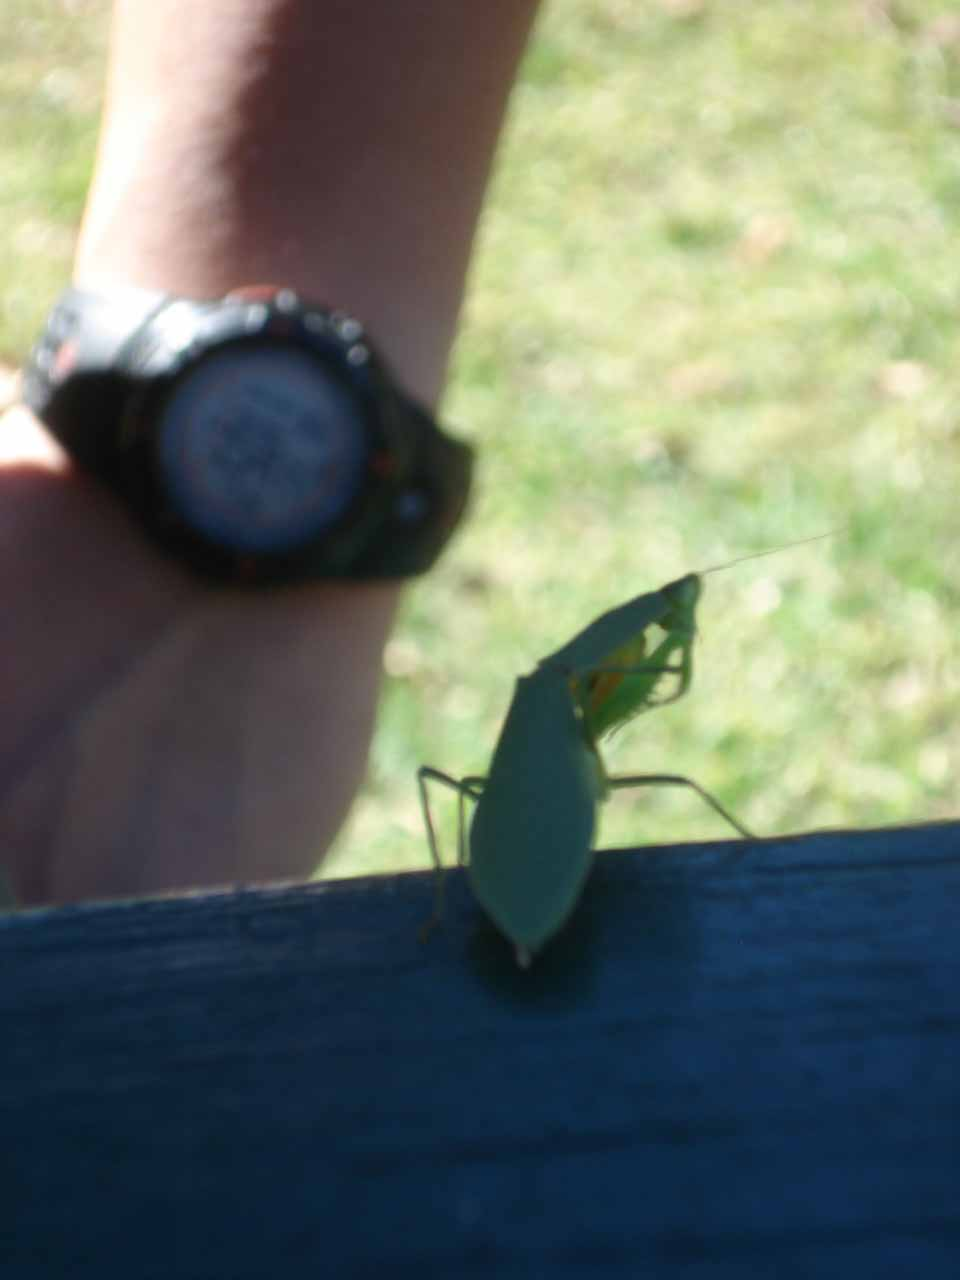 The leafy mantis that essentially led to this camera's demise